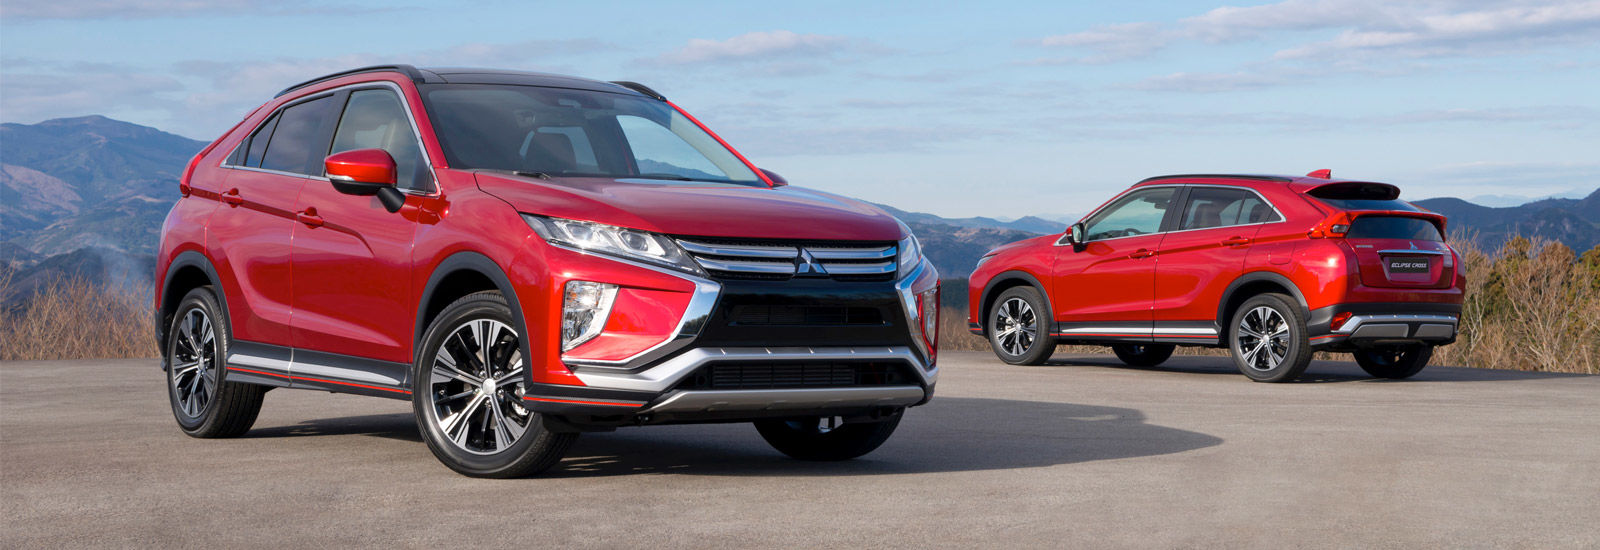 2018 mitsubishi asx release date.  asx the new eclipse cross shares a broad black grille with the current  outlander but benefits from set of large foglights and thick chrome trim pieces to  to 2018 mitsubishi asx release date 8